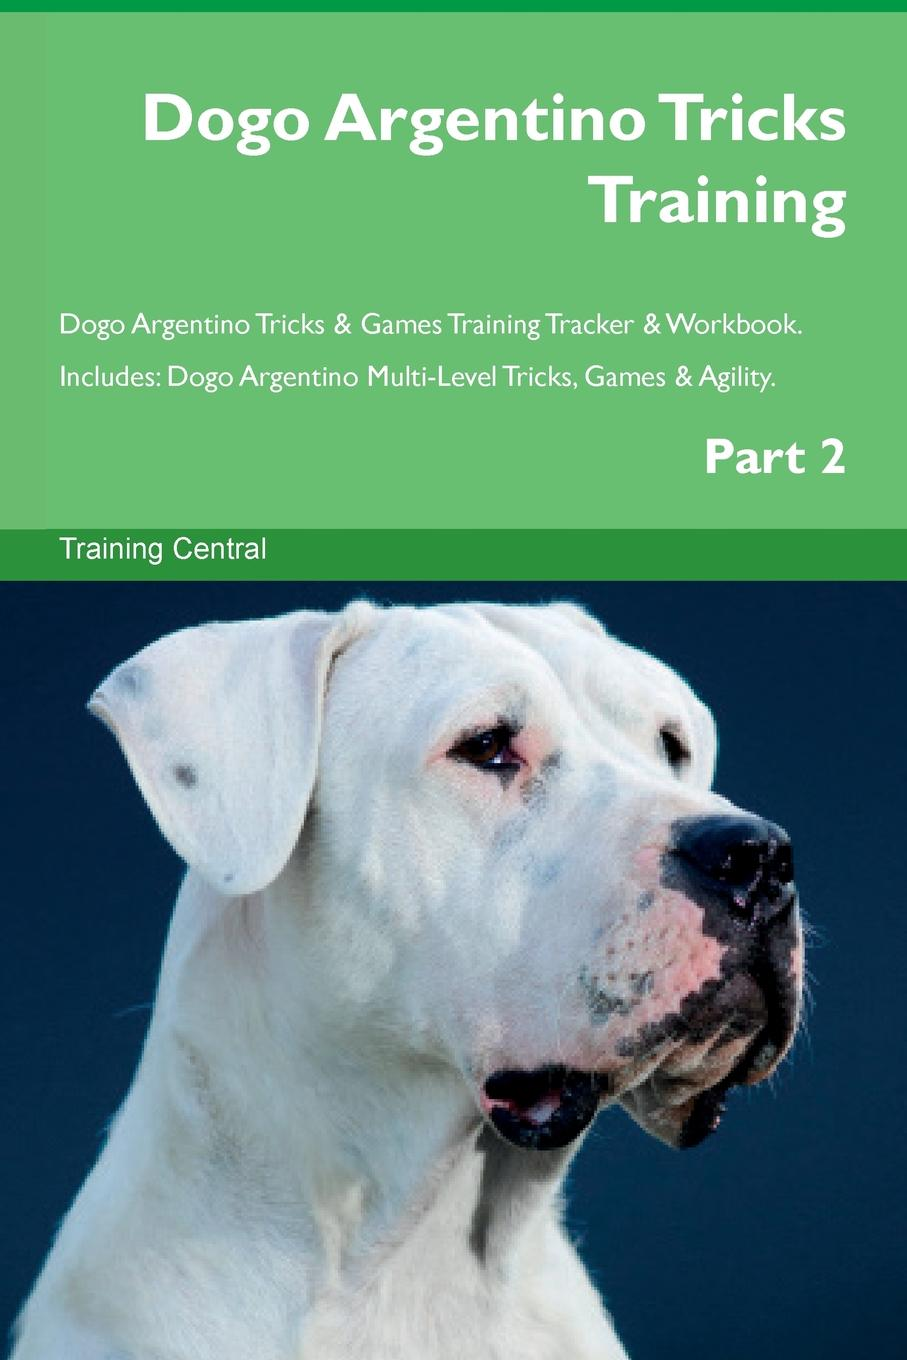 Training Central Dogo Argentino Tricks Training Dogo Argentino Tricks . Games Training Tracker . Workbook. Includes. Dogo Argentino Multi-Level Tricks, Games . Agility. Part 2 this book loves you